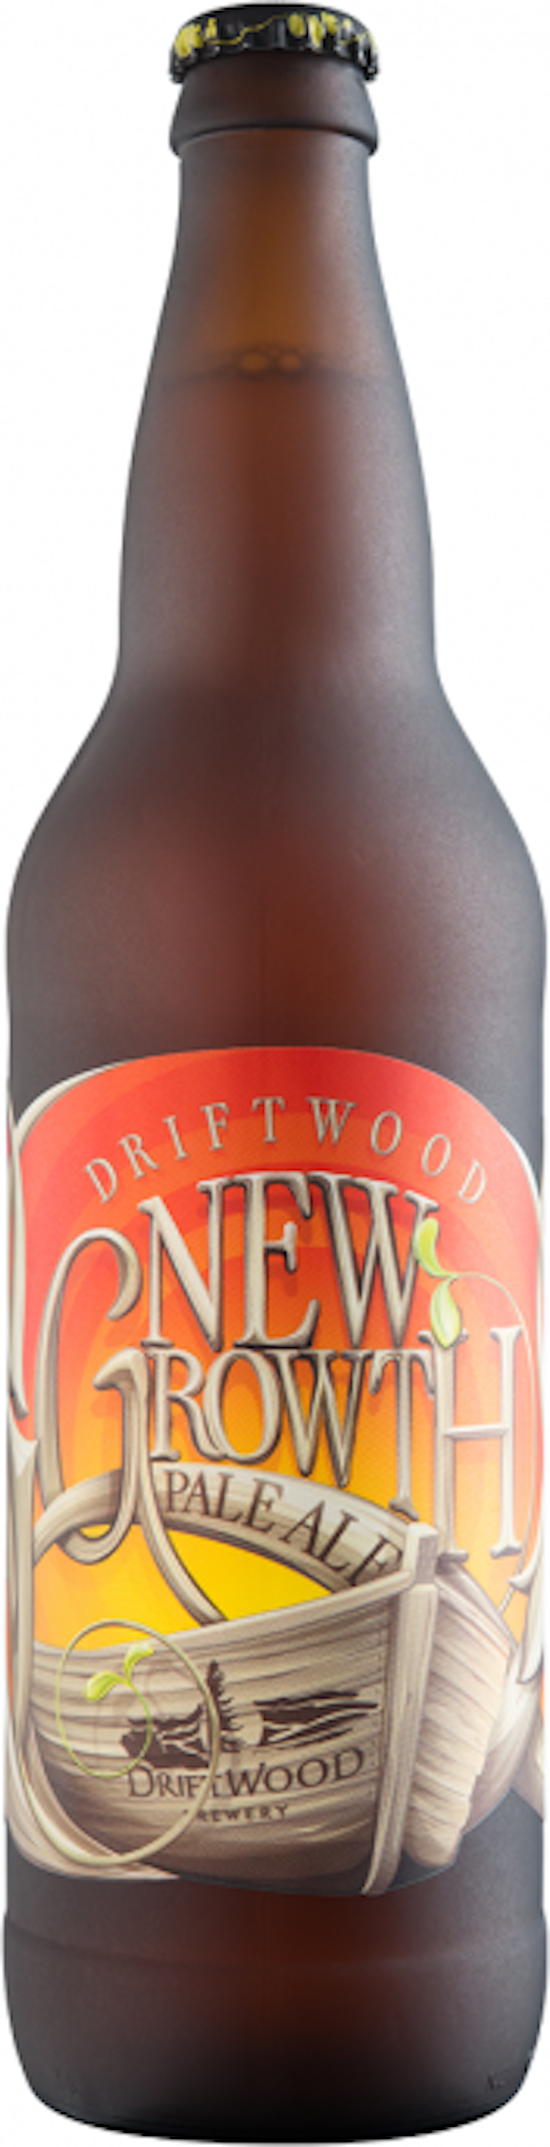 canada-day-beers-new-growth-driftwood